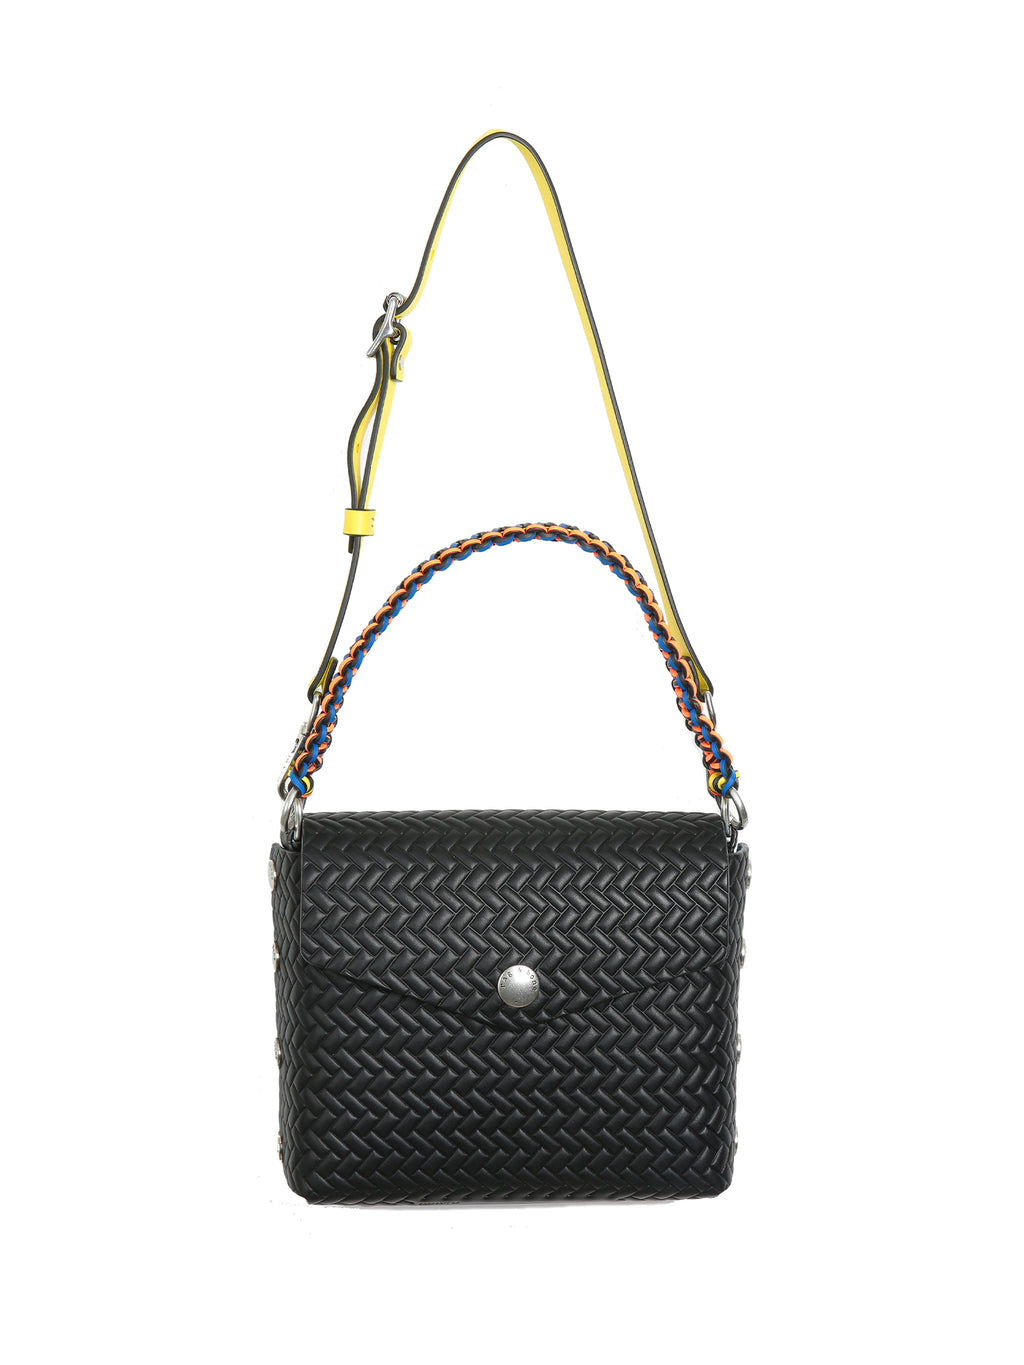 Rag & Bone Atlas Black Embossed Shoulder Bag